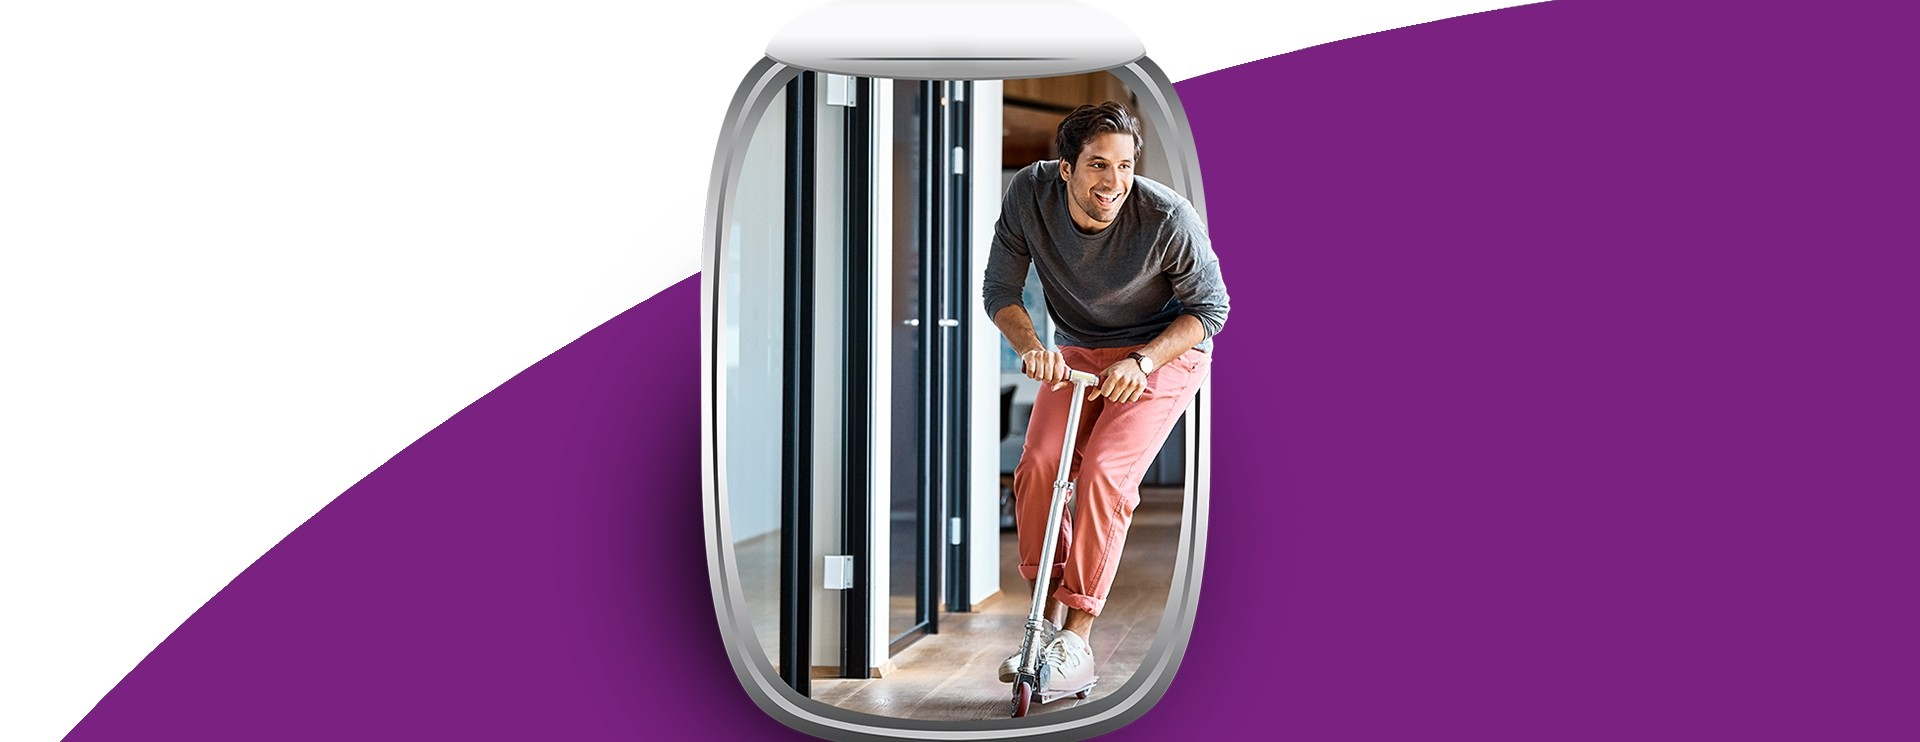 Be as flexible as this man on a scooter with the AirPlus Corporate Card